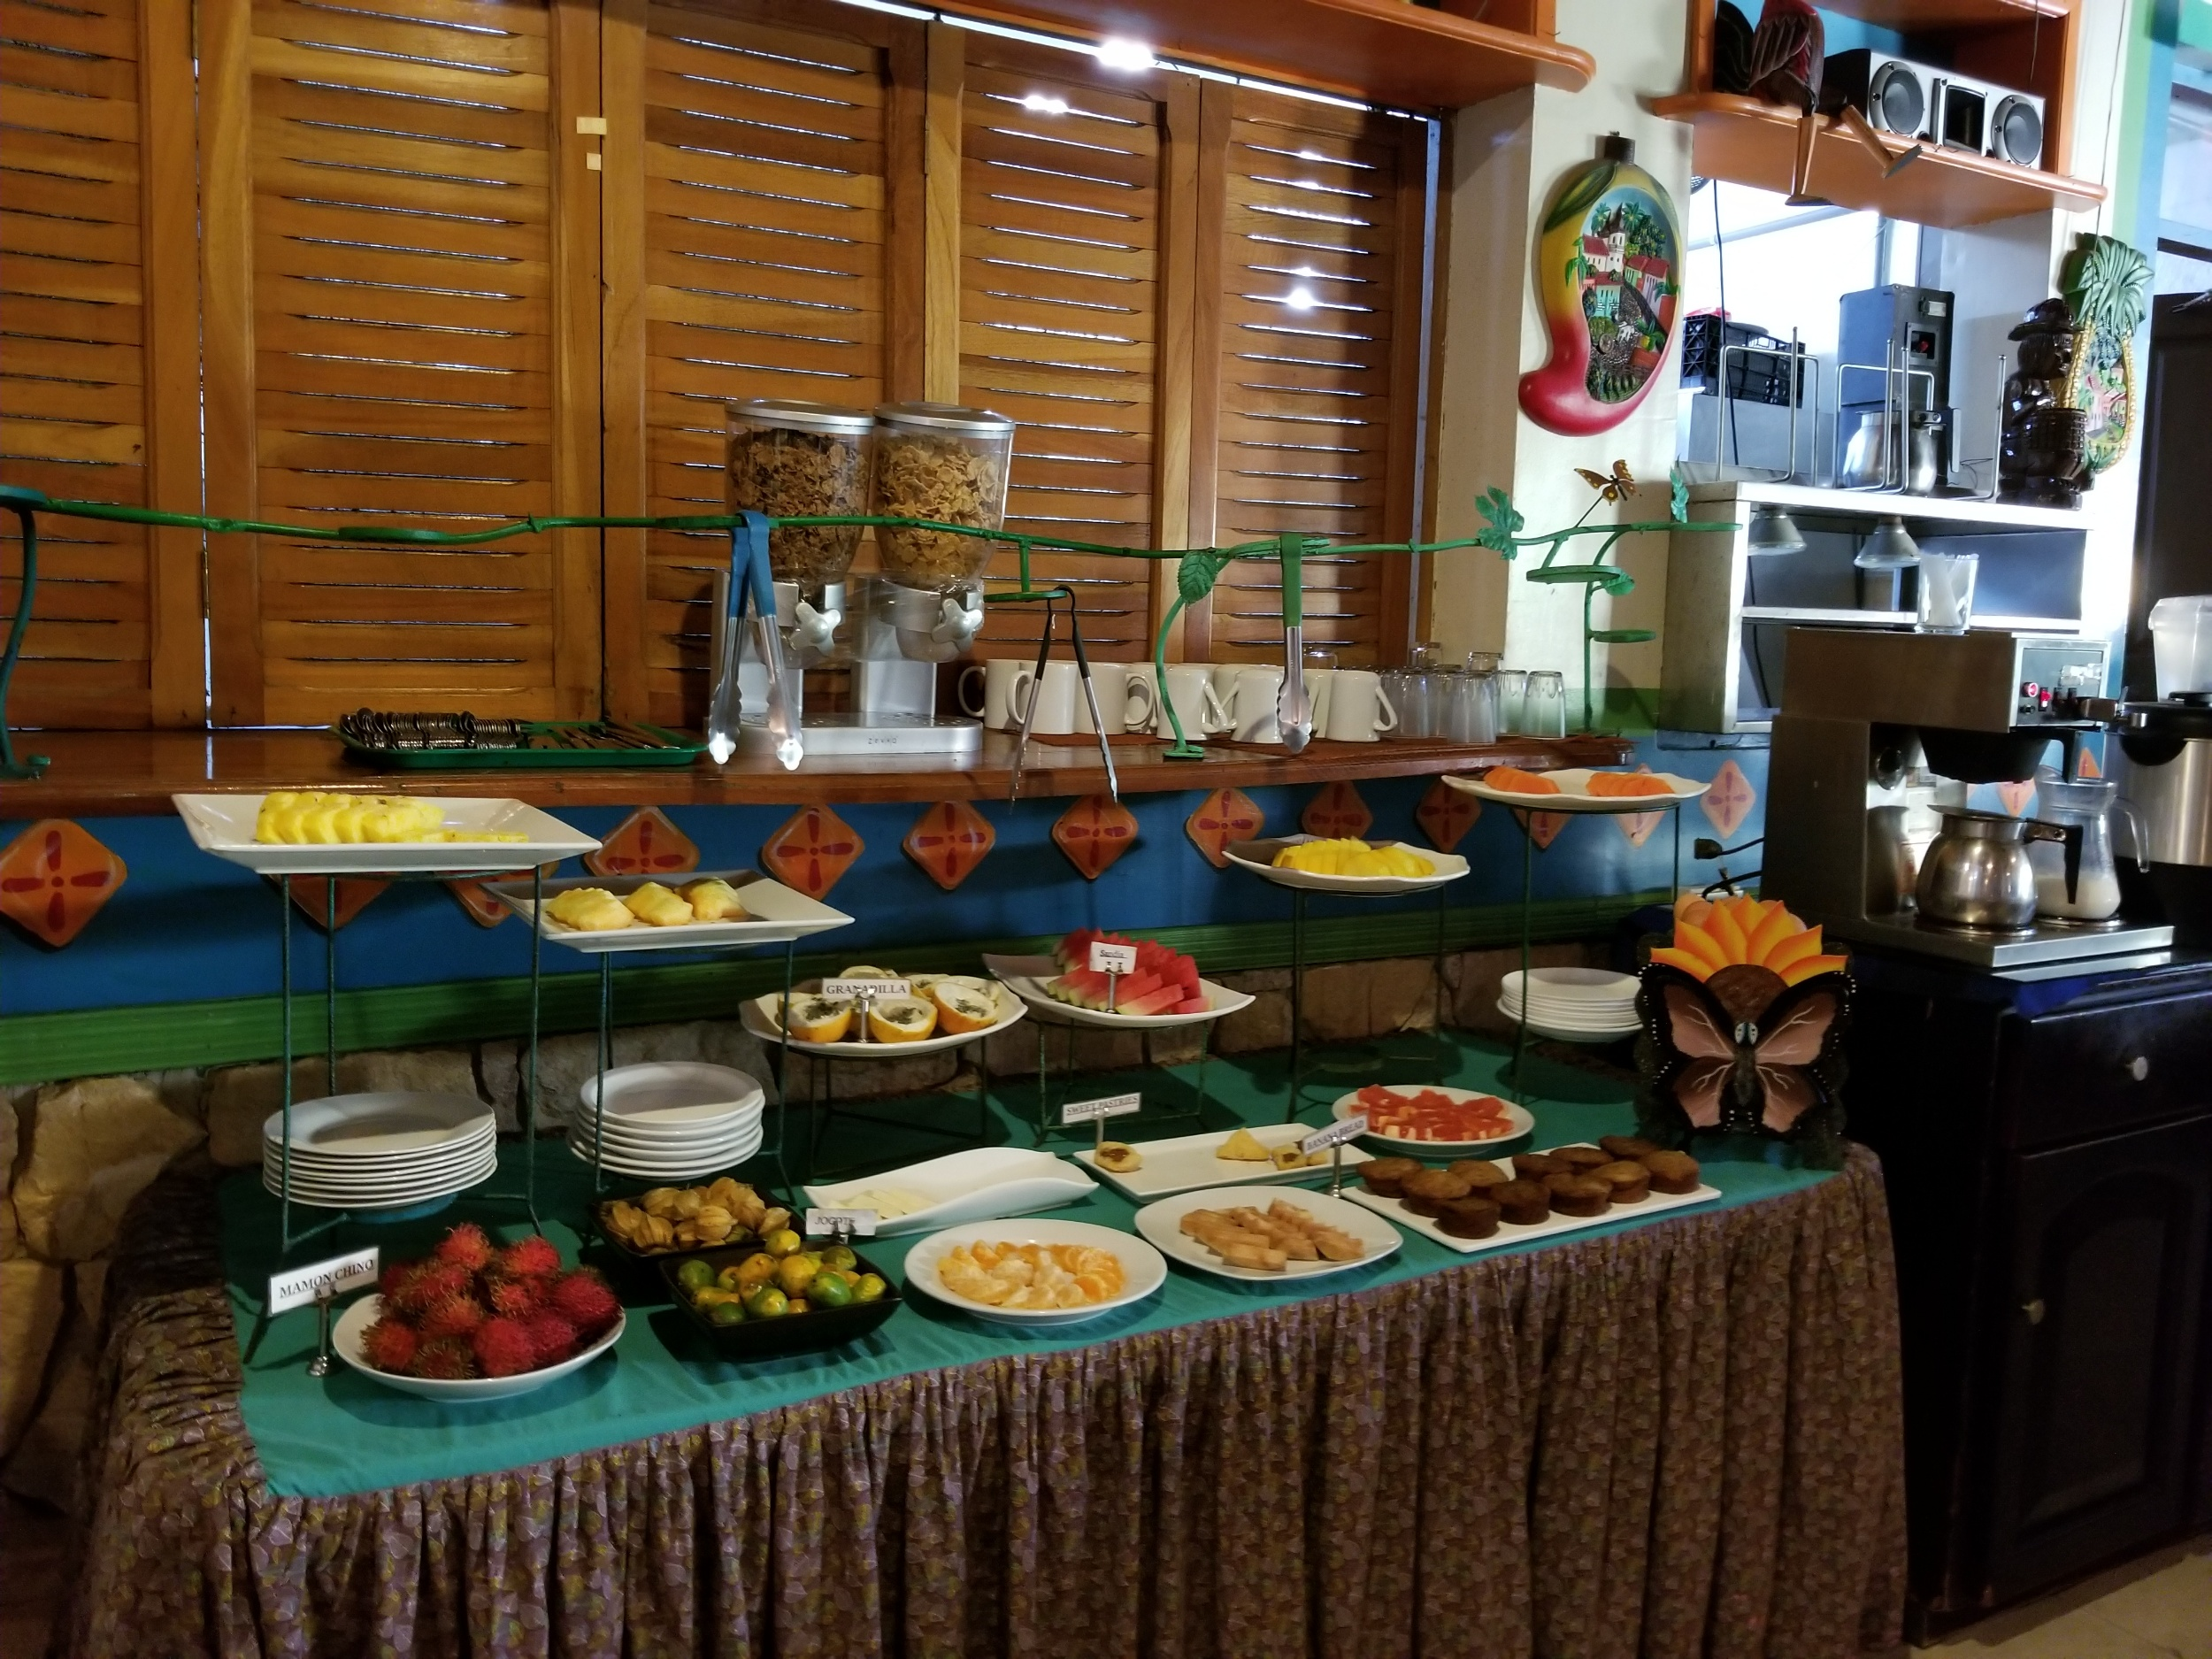 The little buffet you can get fruits and bakery items from while you wait for your breakfast to be cooked fresh.